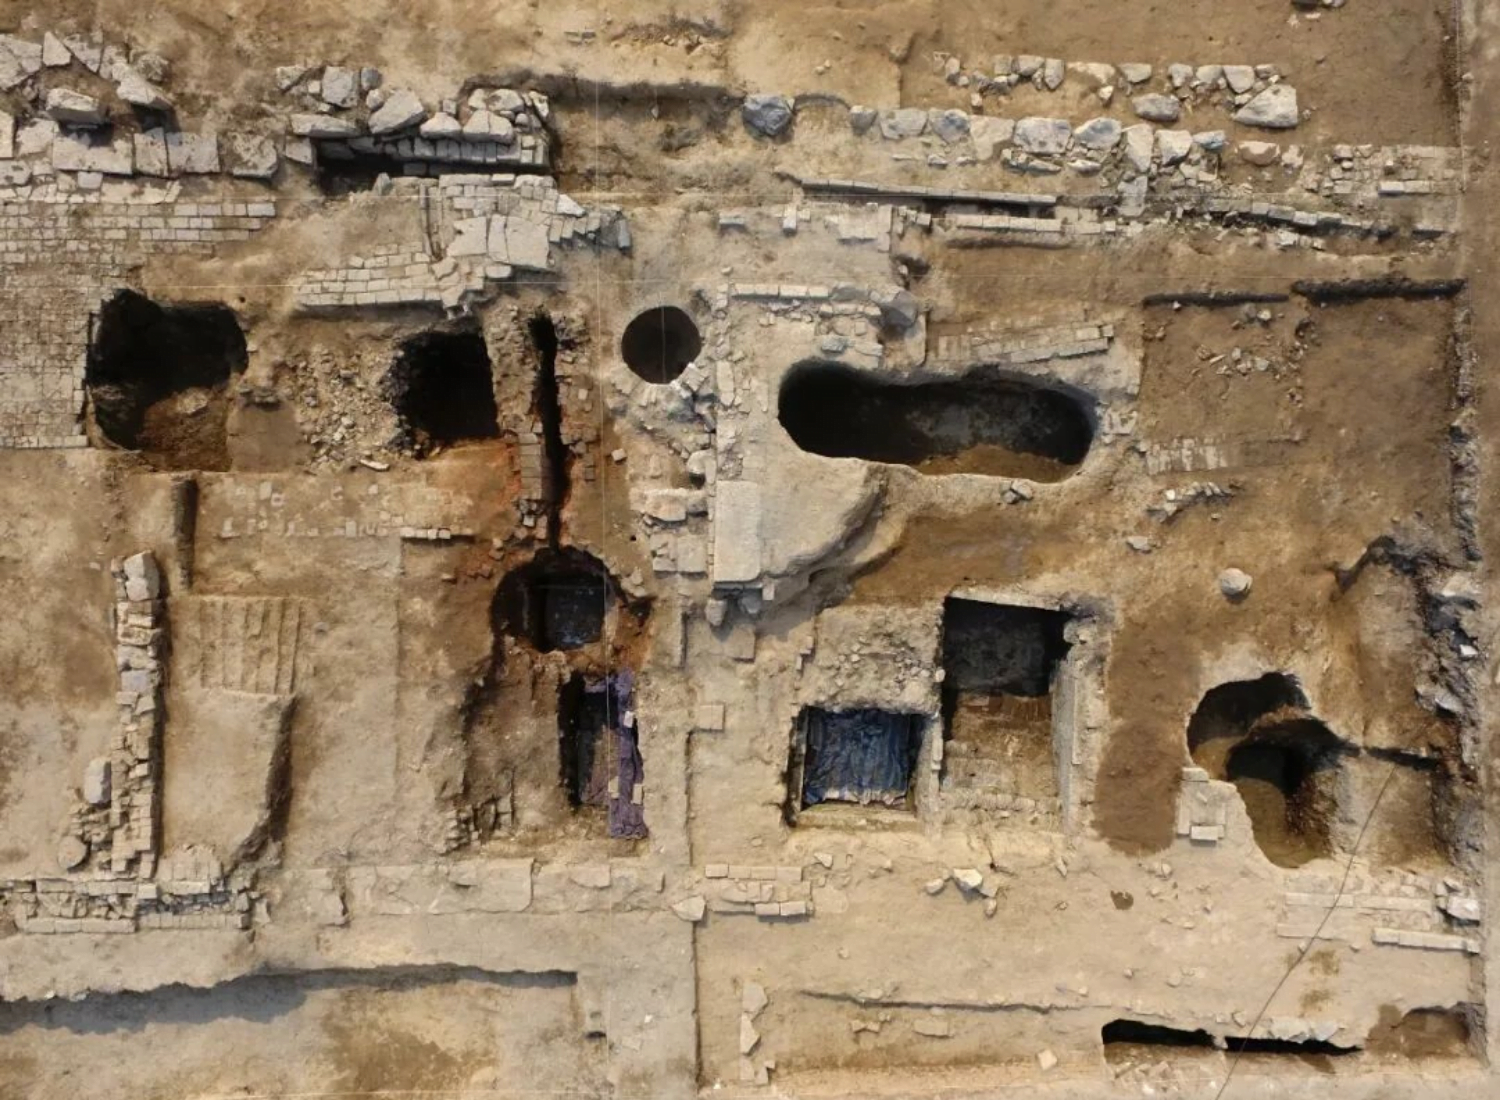 discovery of 500-year-old distillery in China